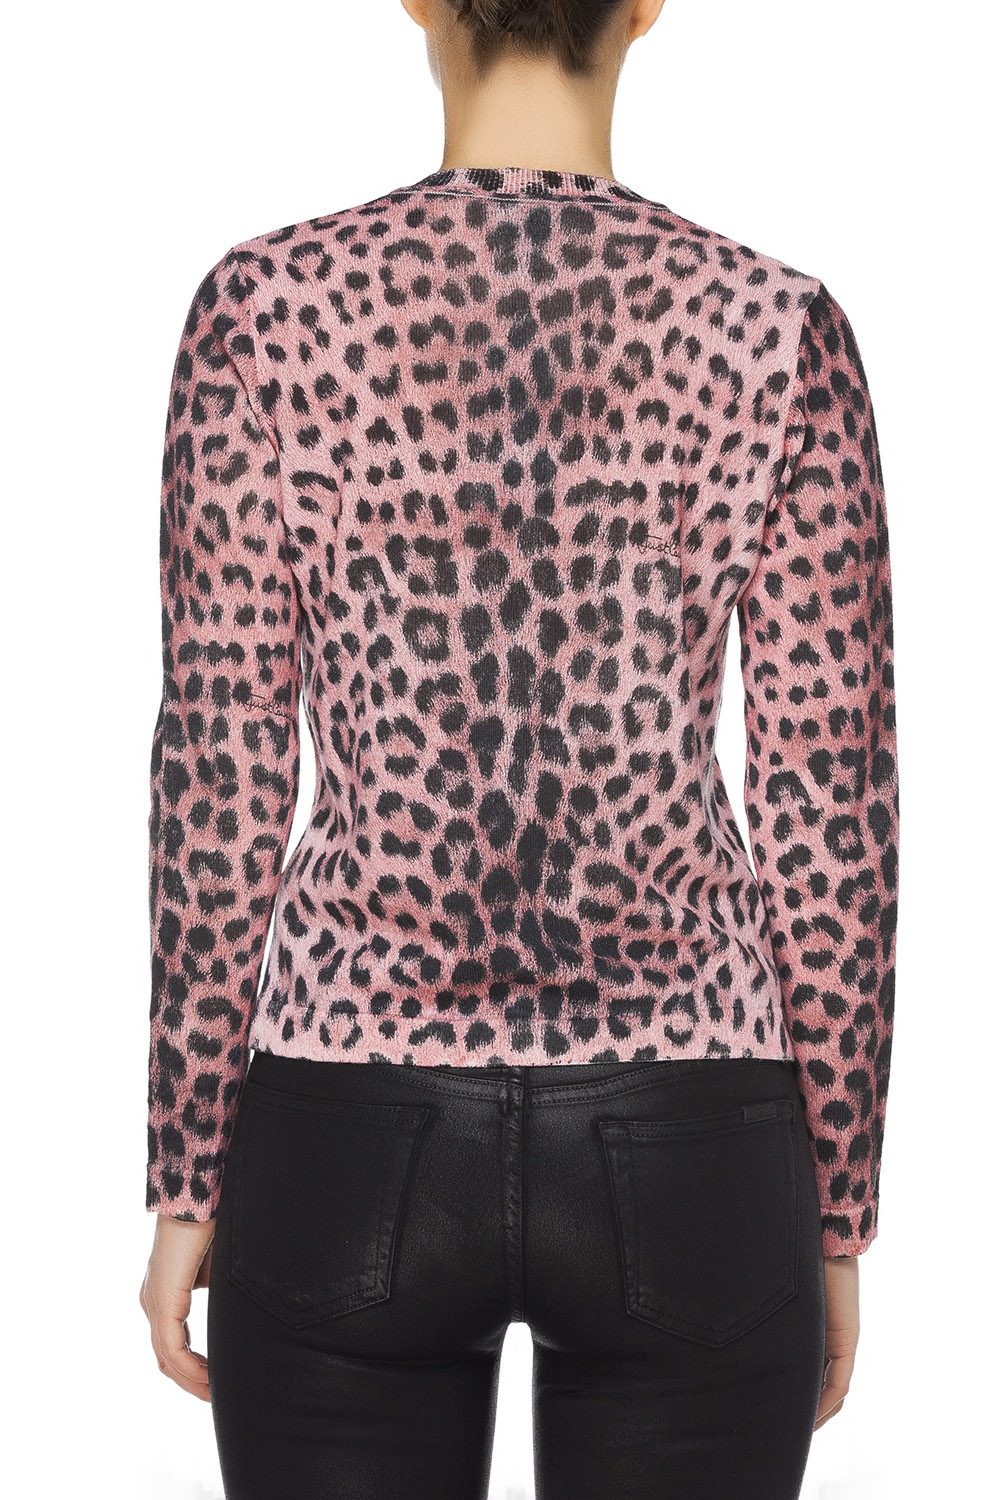 Just Cavalli Pink Animal Print Cardigan Pink 365ist